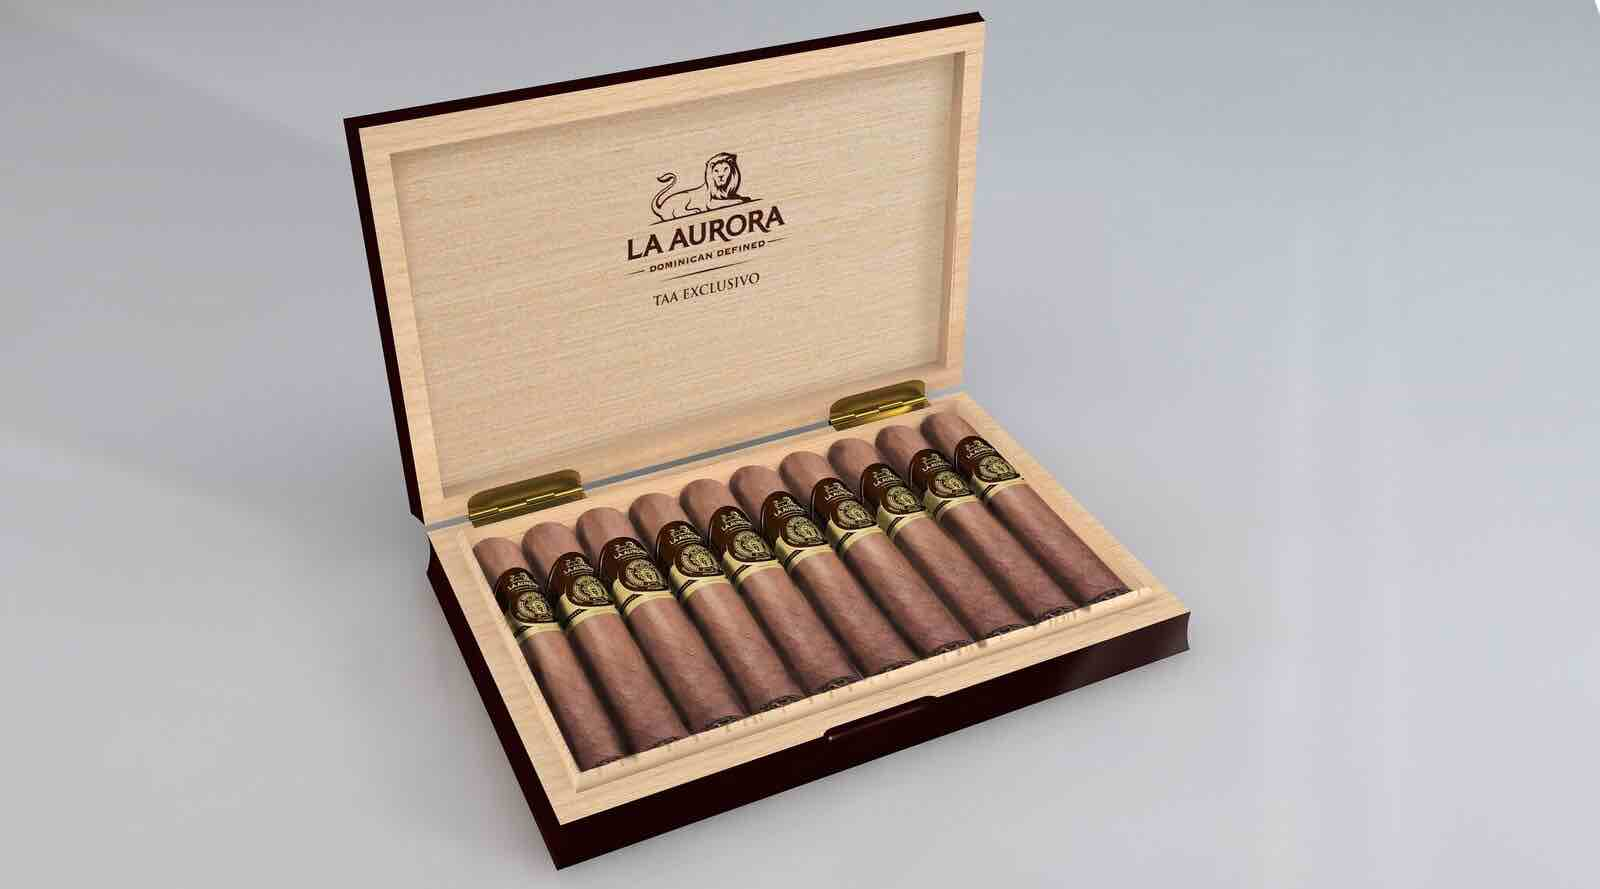 Cigar News: La Aurora TAA Exclusivo Scheduled to Head to Member Retailers